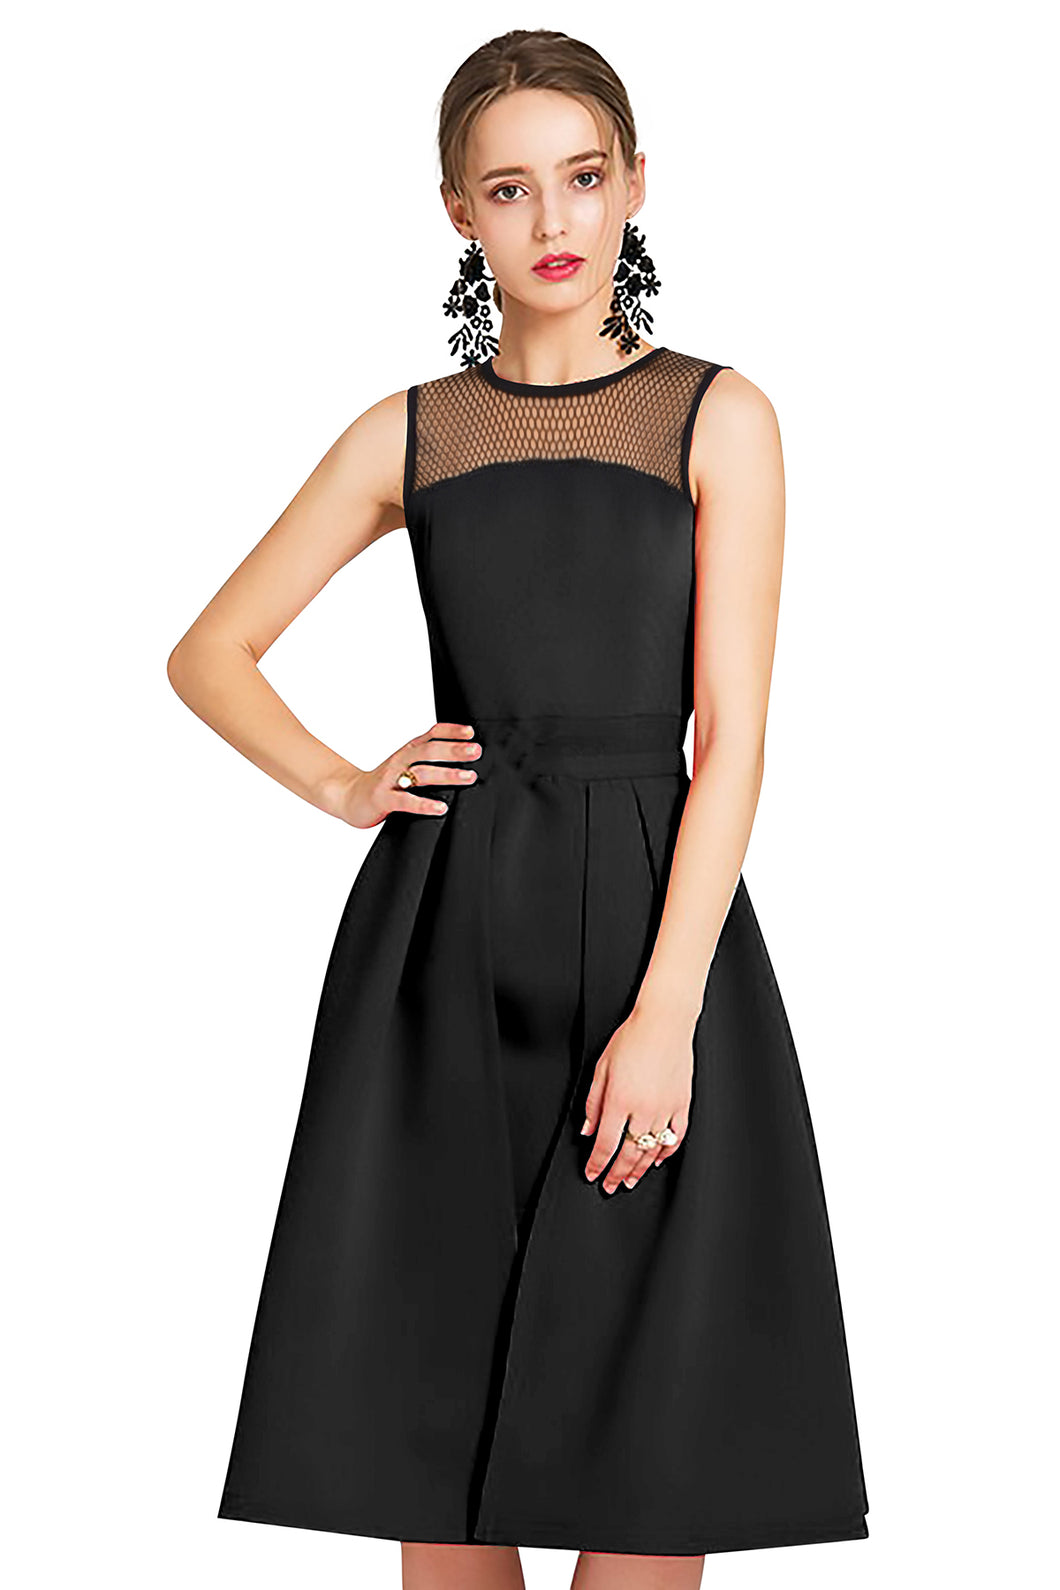 Mesh Shoulder sleeveless Midi Party Dress - ForHar Closet